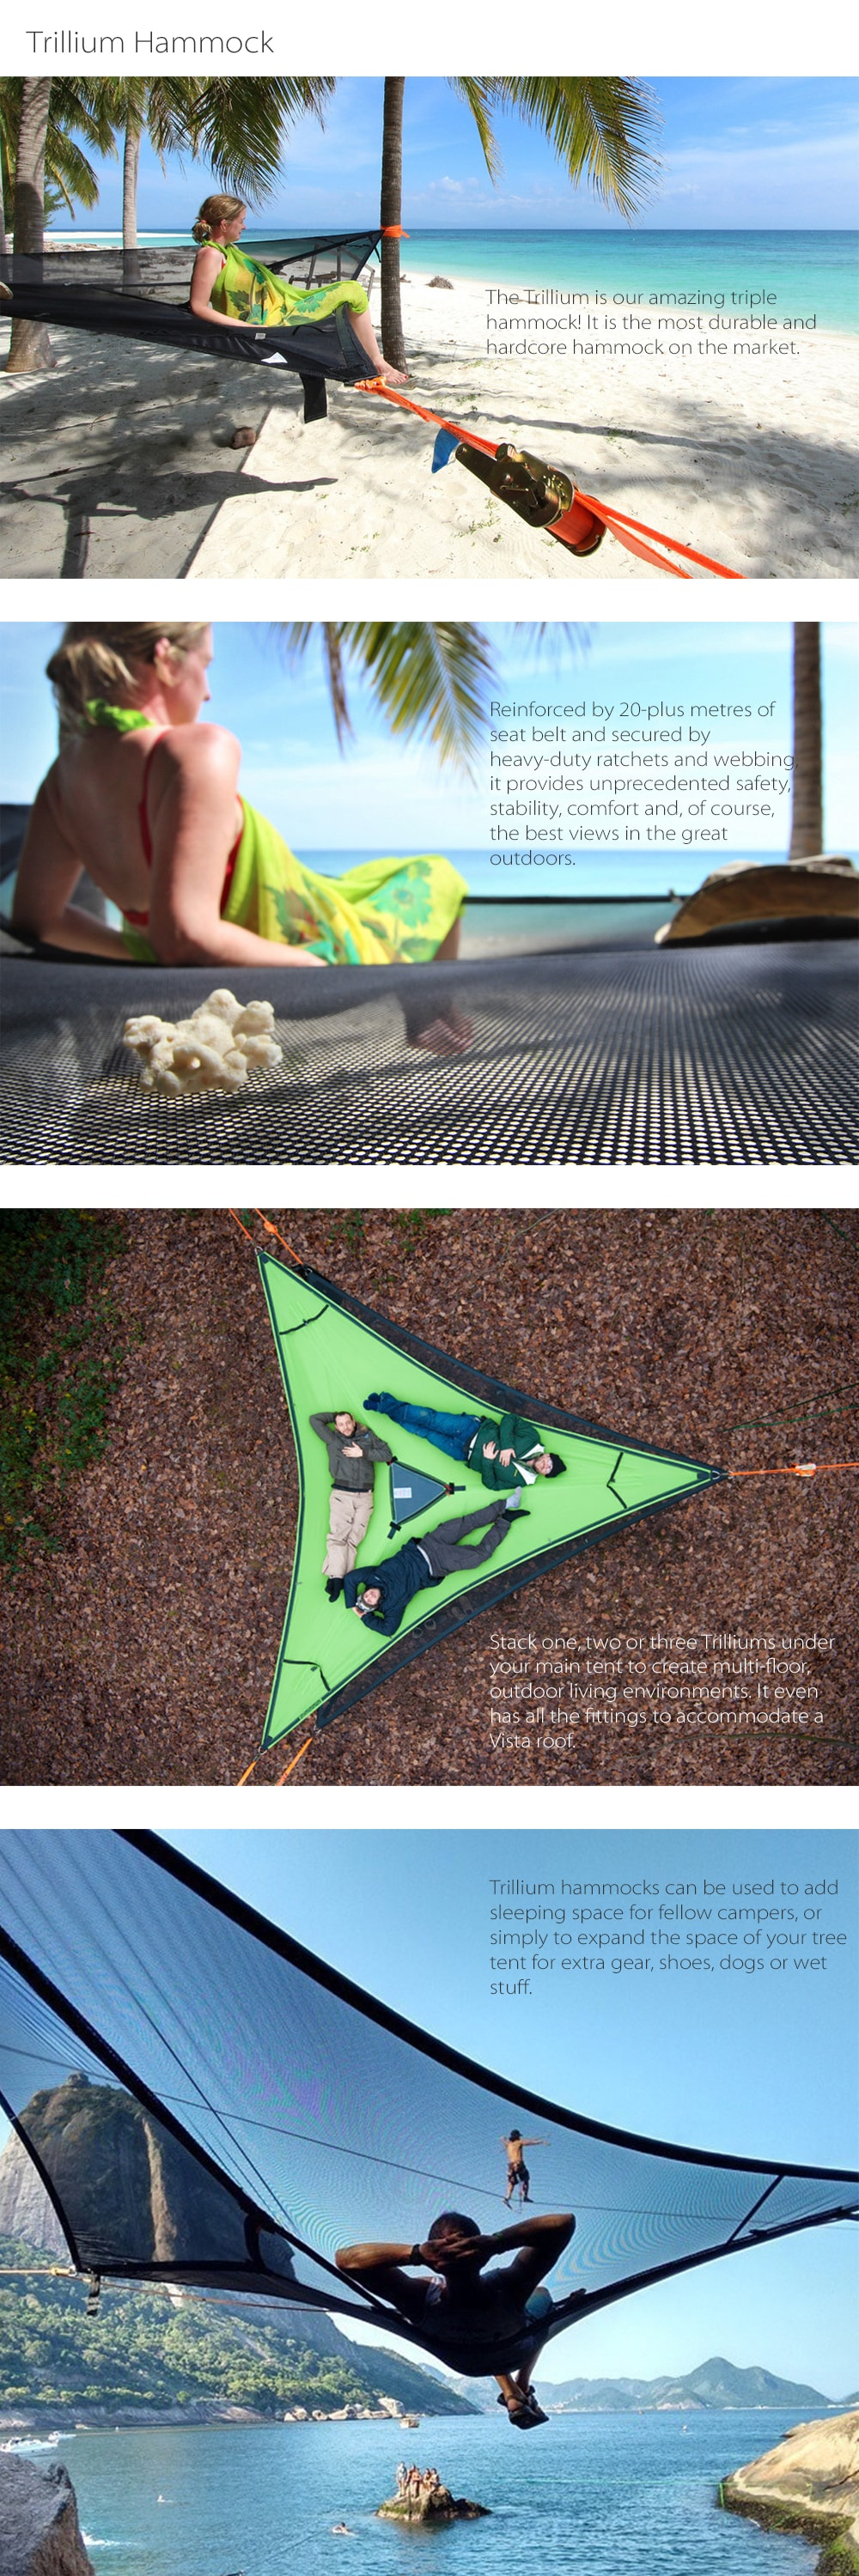 Trillium Hammock Tent The Most Durable And Hardcore Hammock